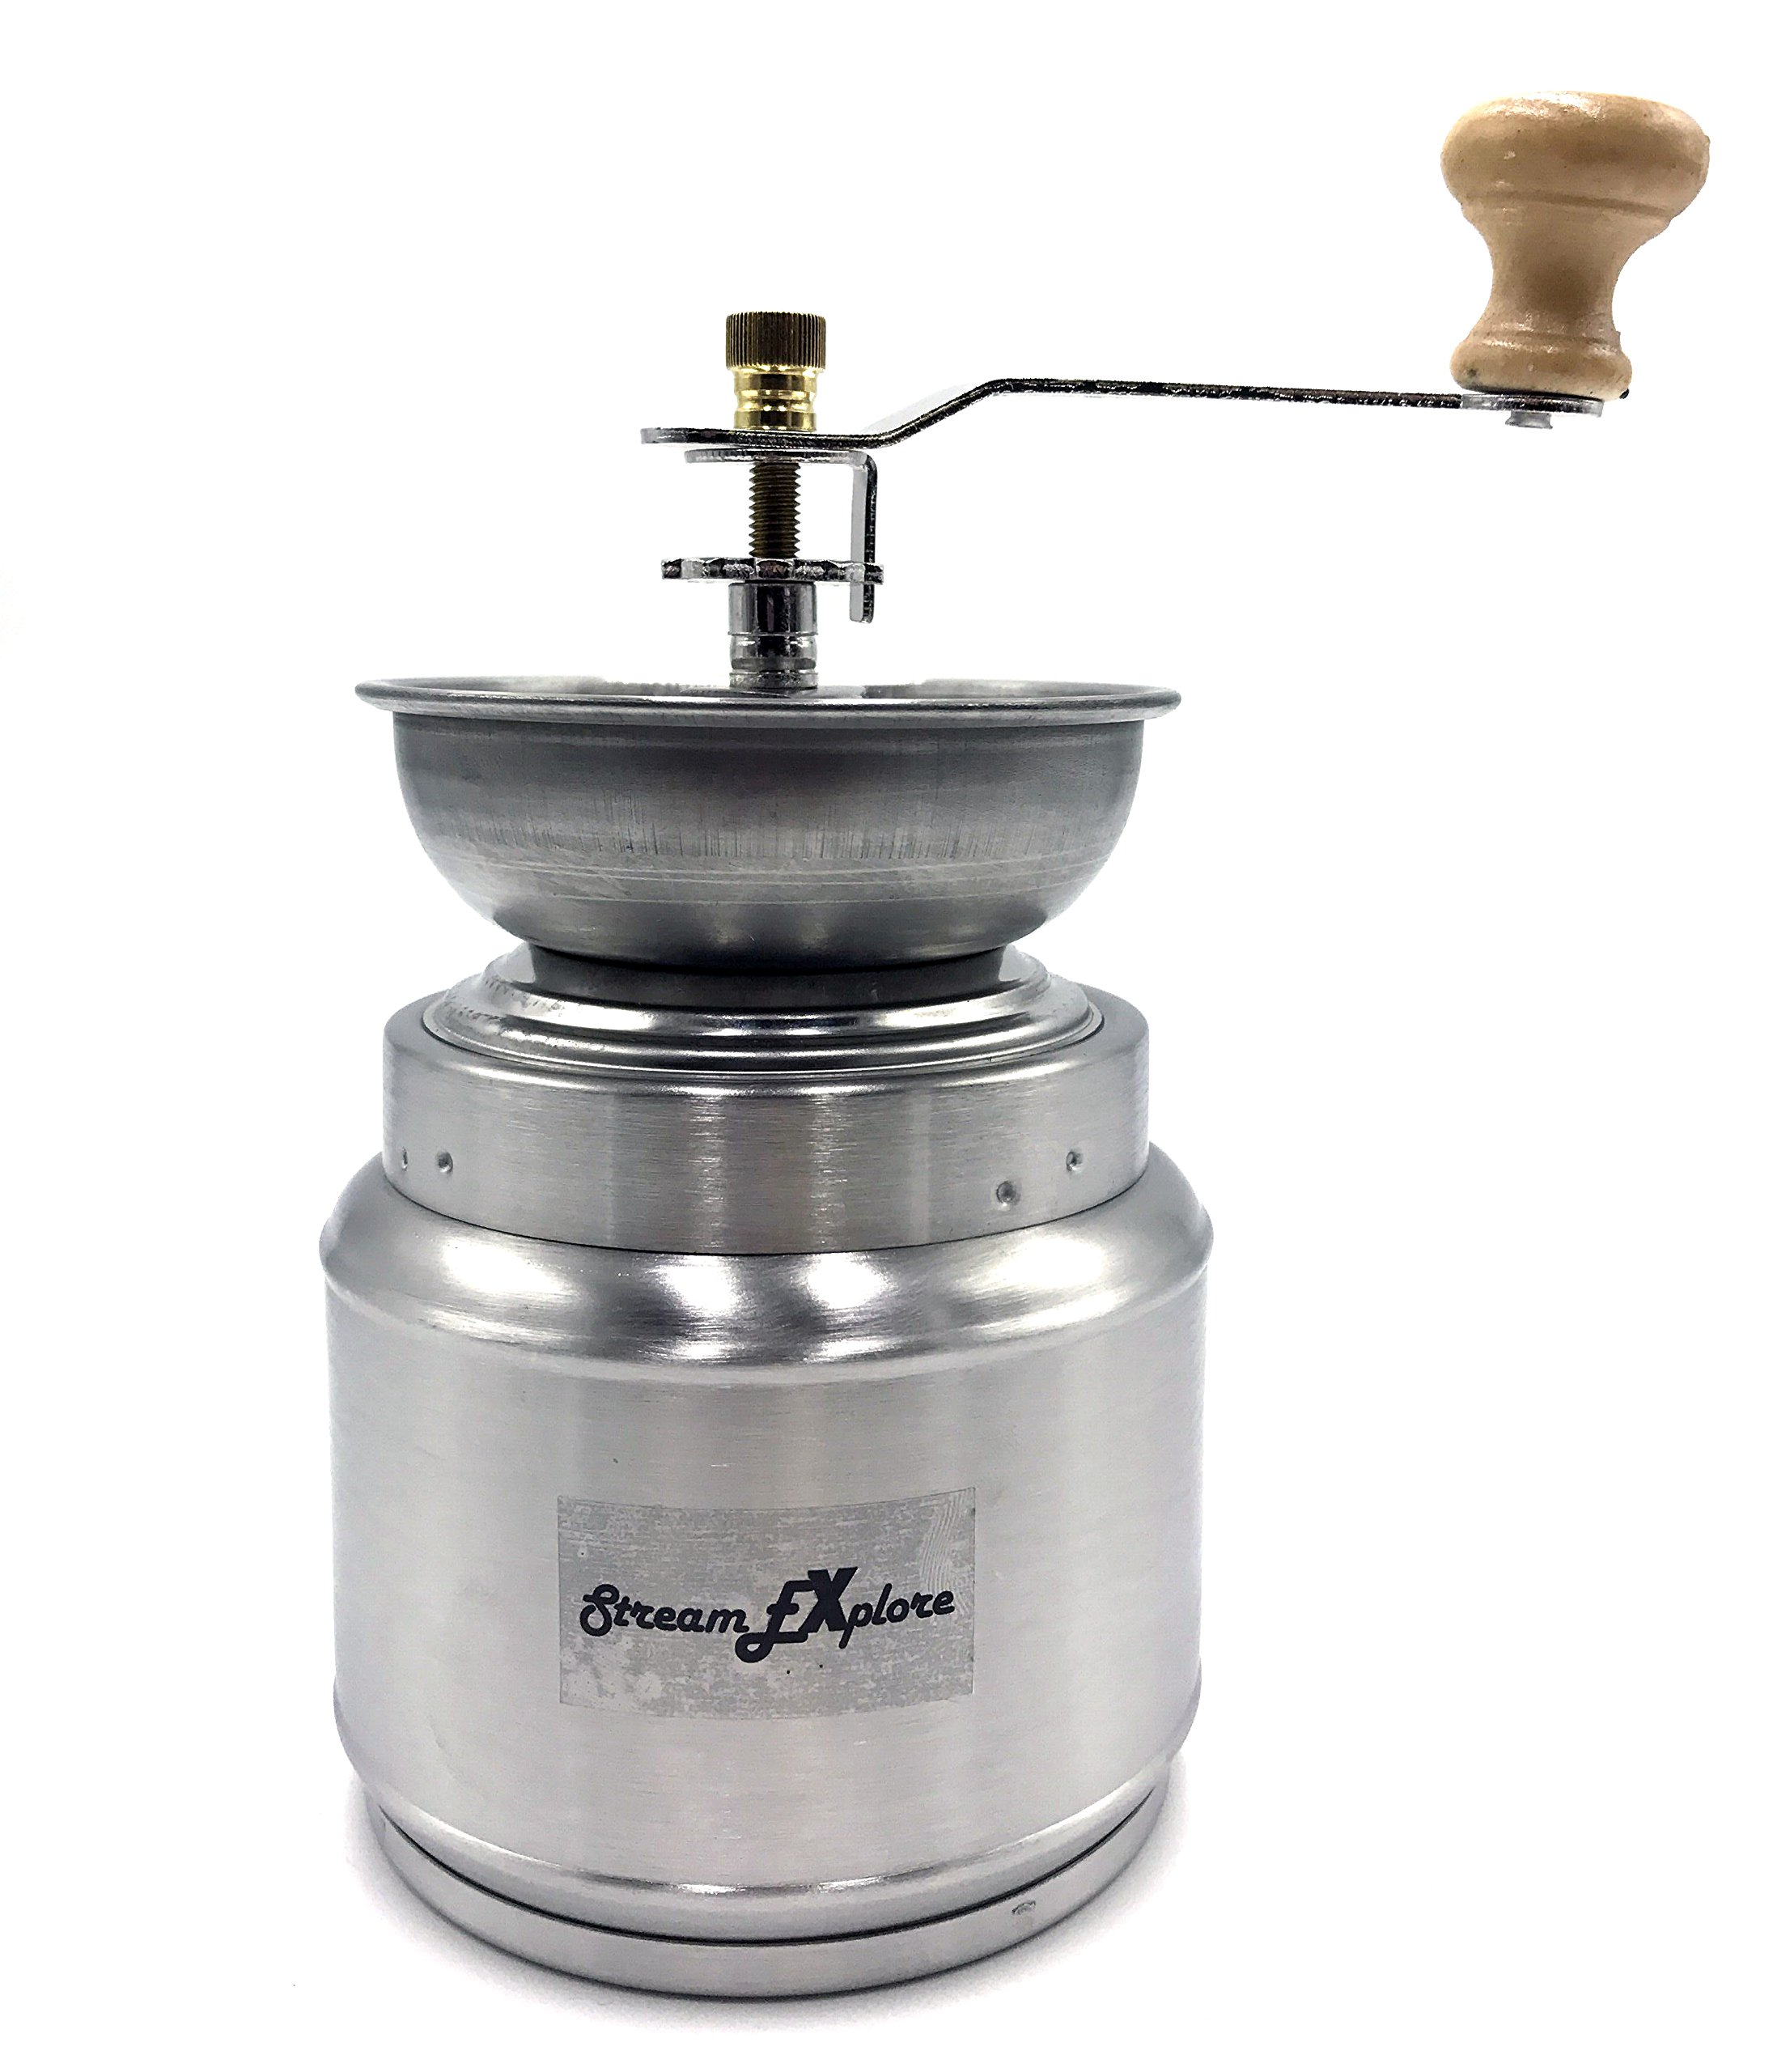 StreamEXplore Manual Coffee Grinder Hand Coffee Mill Burr Coffee Grinder with Ceramic Hand Crank - Stainless Steel